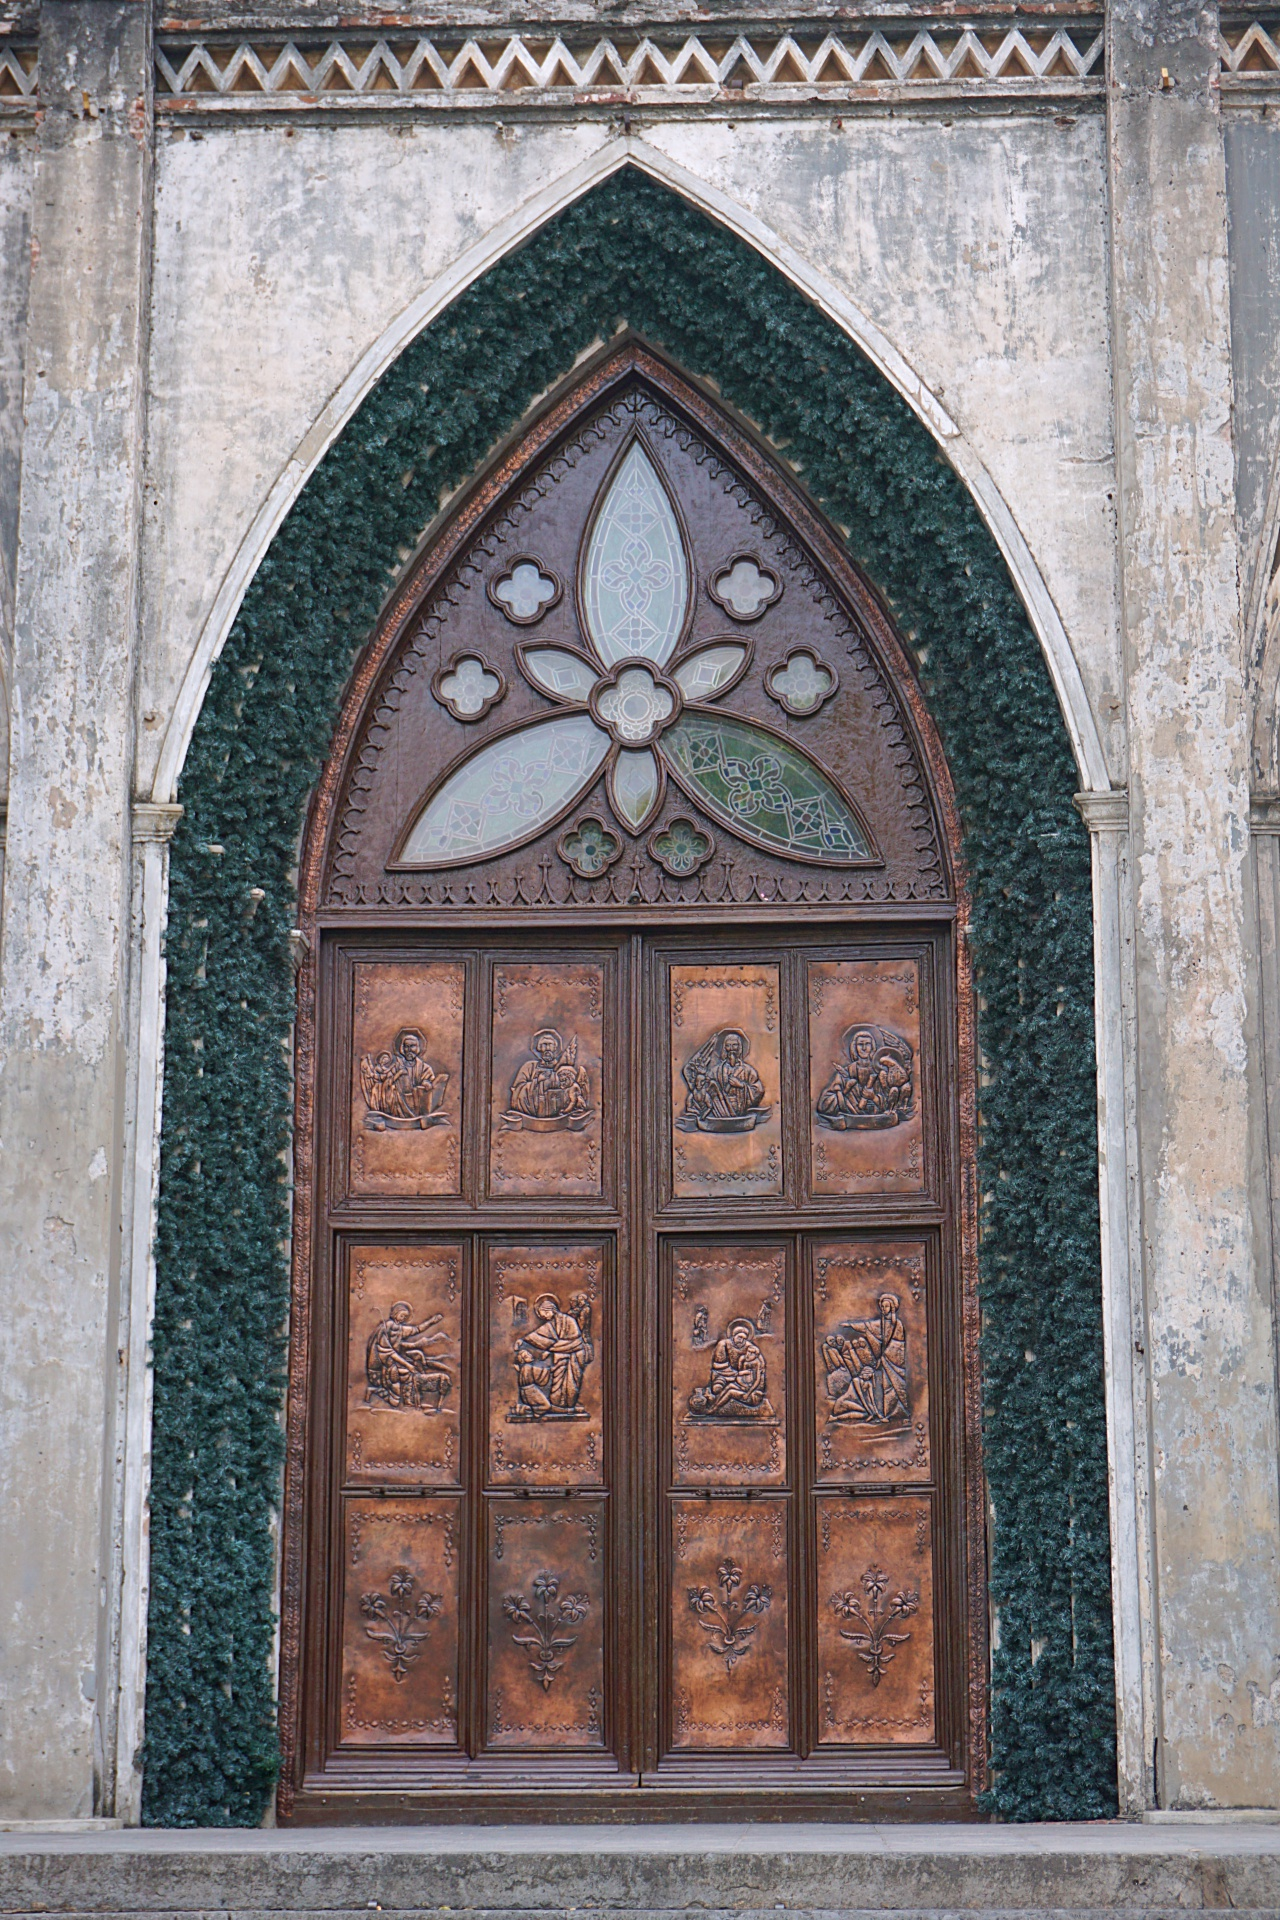 Gate/Portal of St Joseph Cathedral, Hanoi, Vietnam